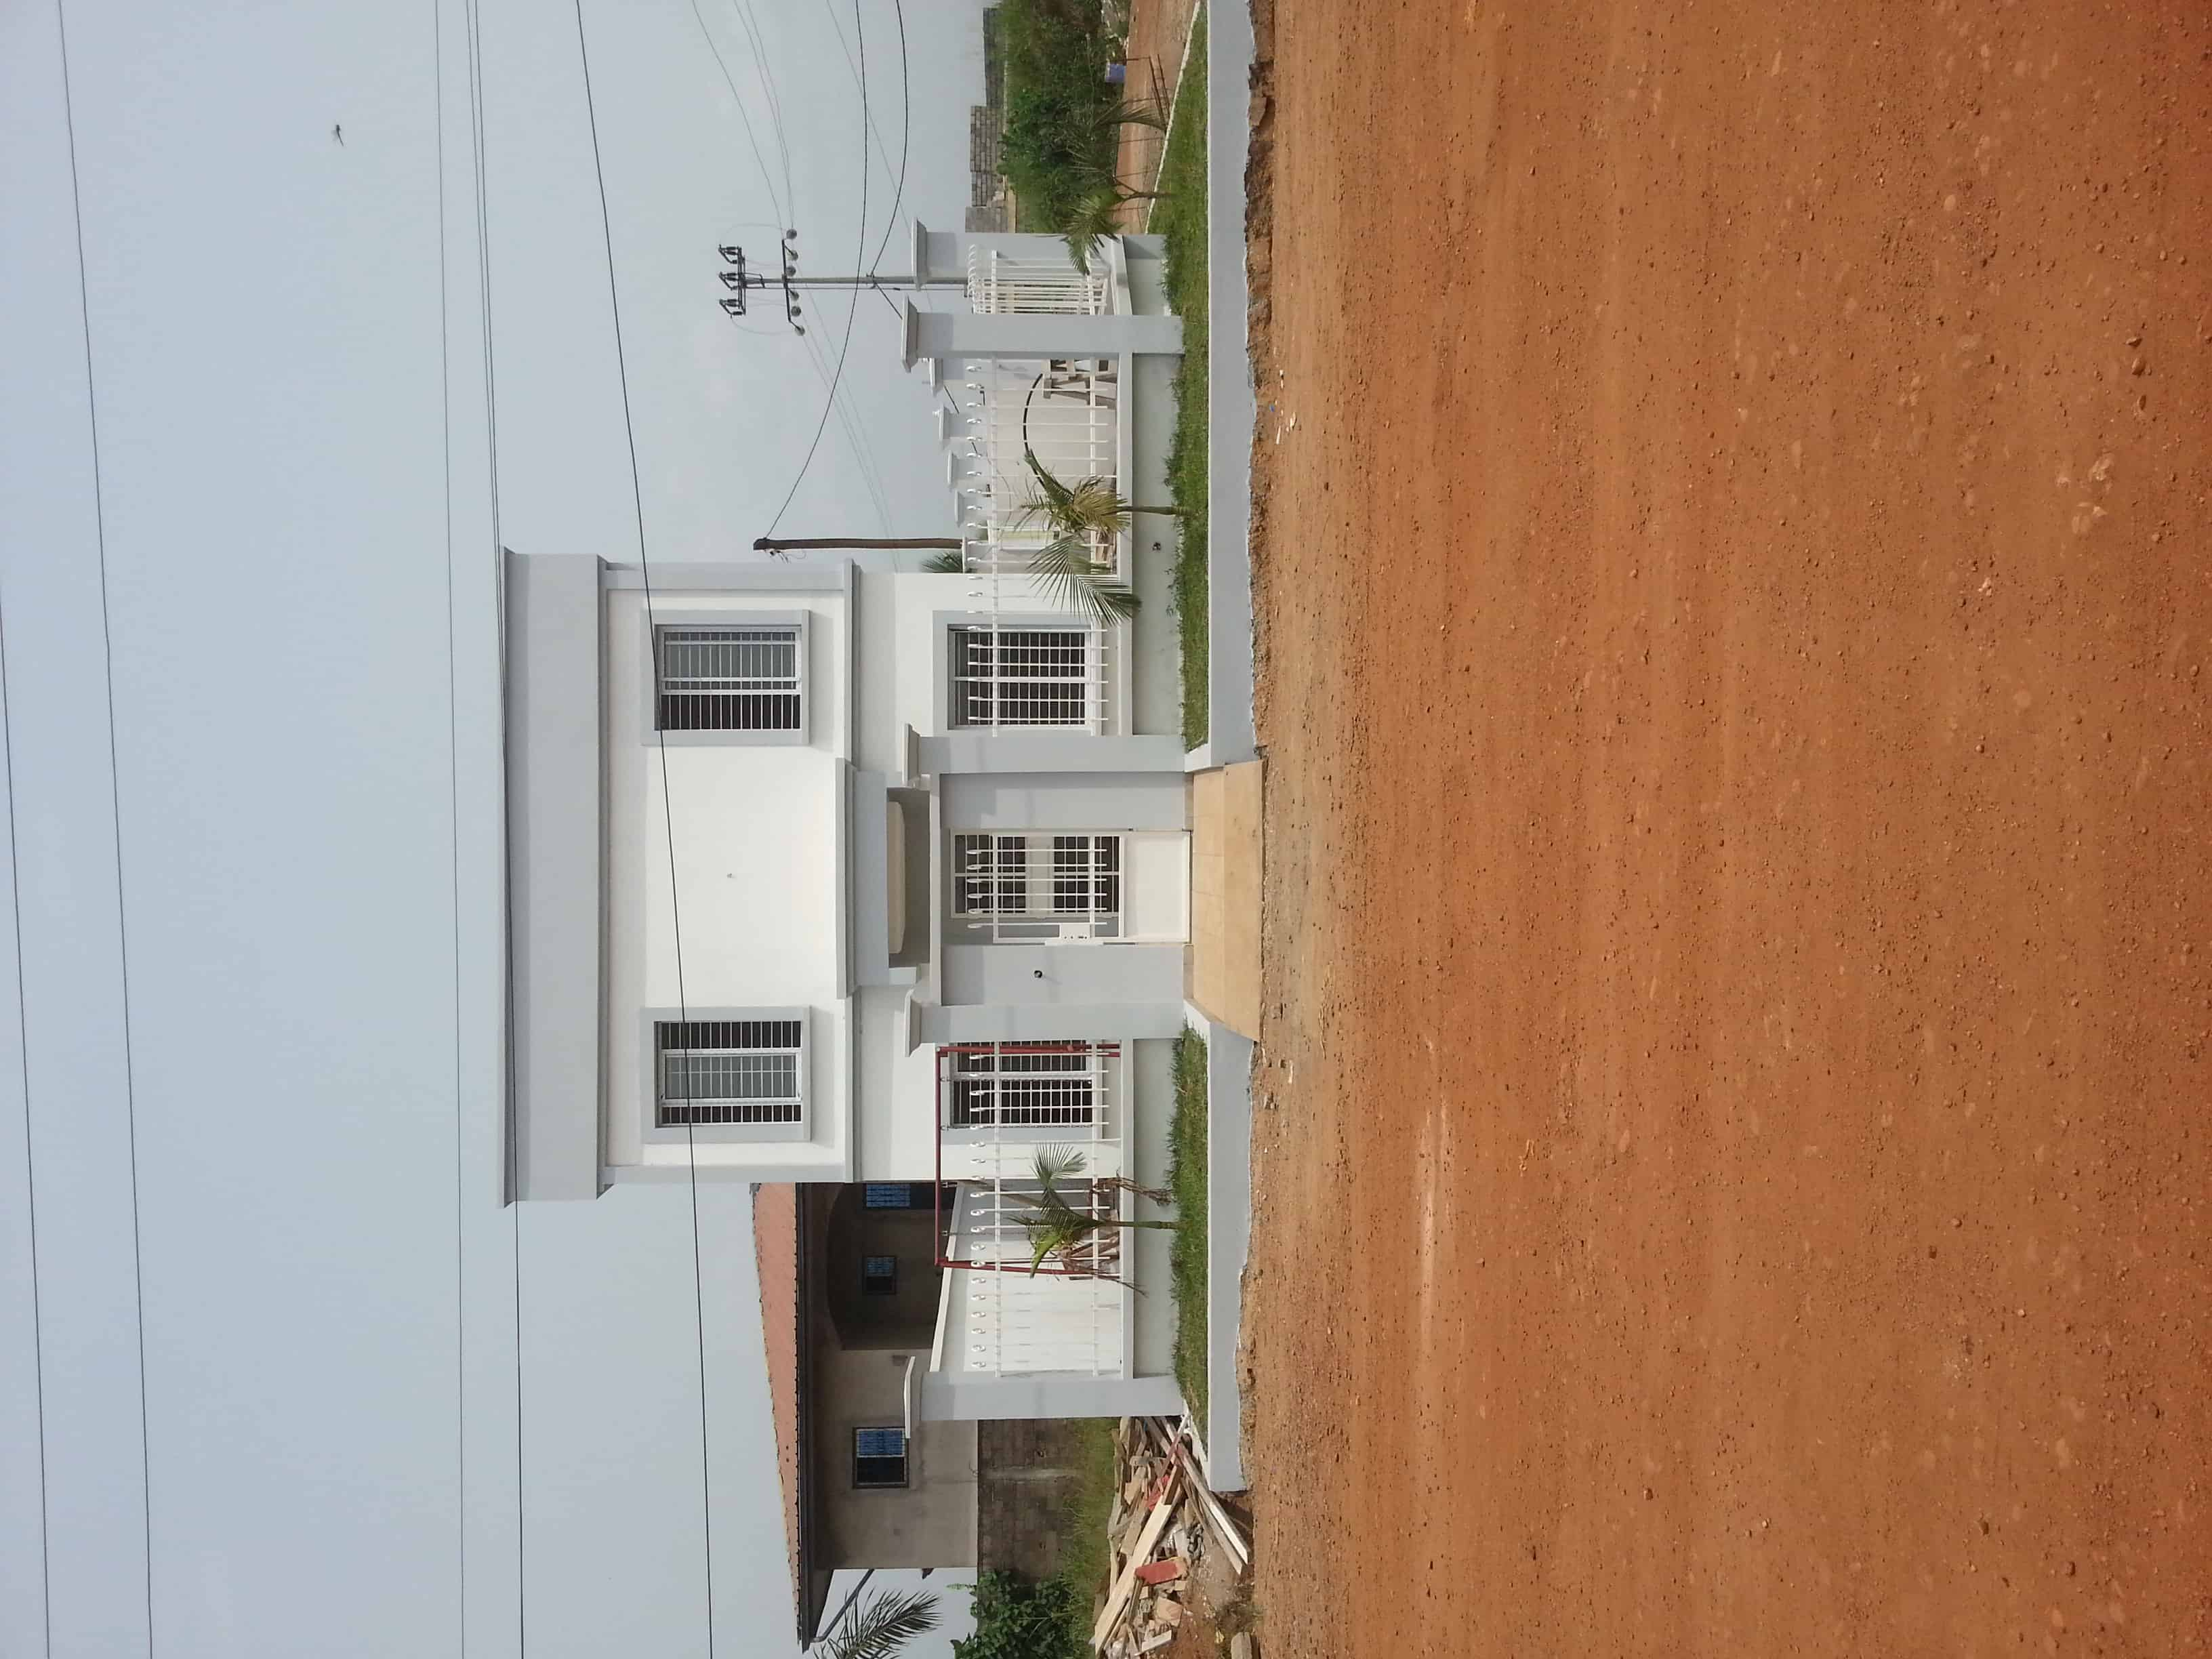 House (Duplex) for sale - Douala, Ndogbong, Cité Chirac - 2 living room(s), 4 bedroom(s), 3 bathroom(s) - 180 000 000 FCFA / month